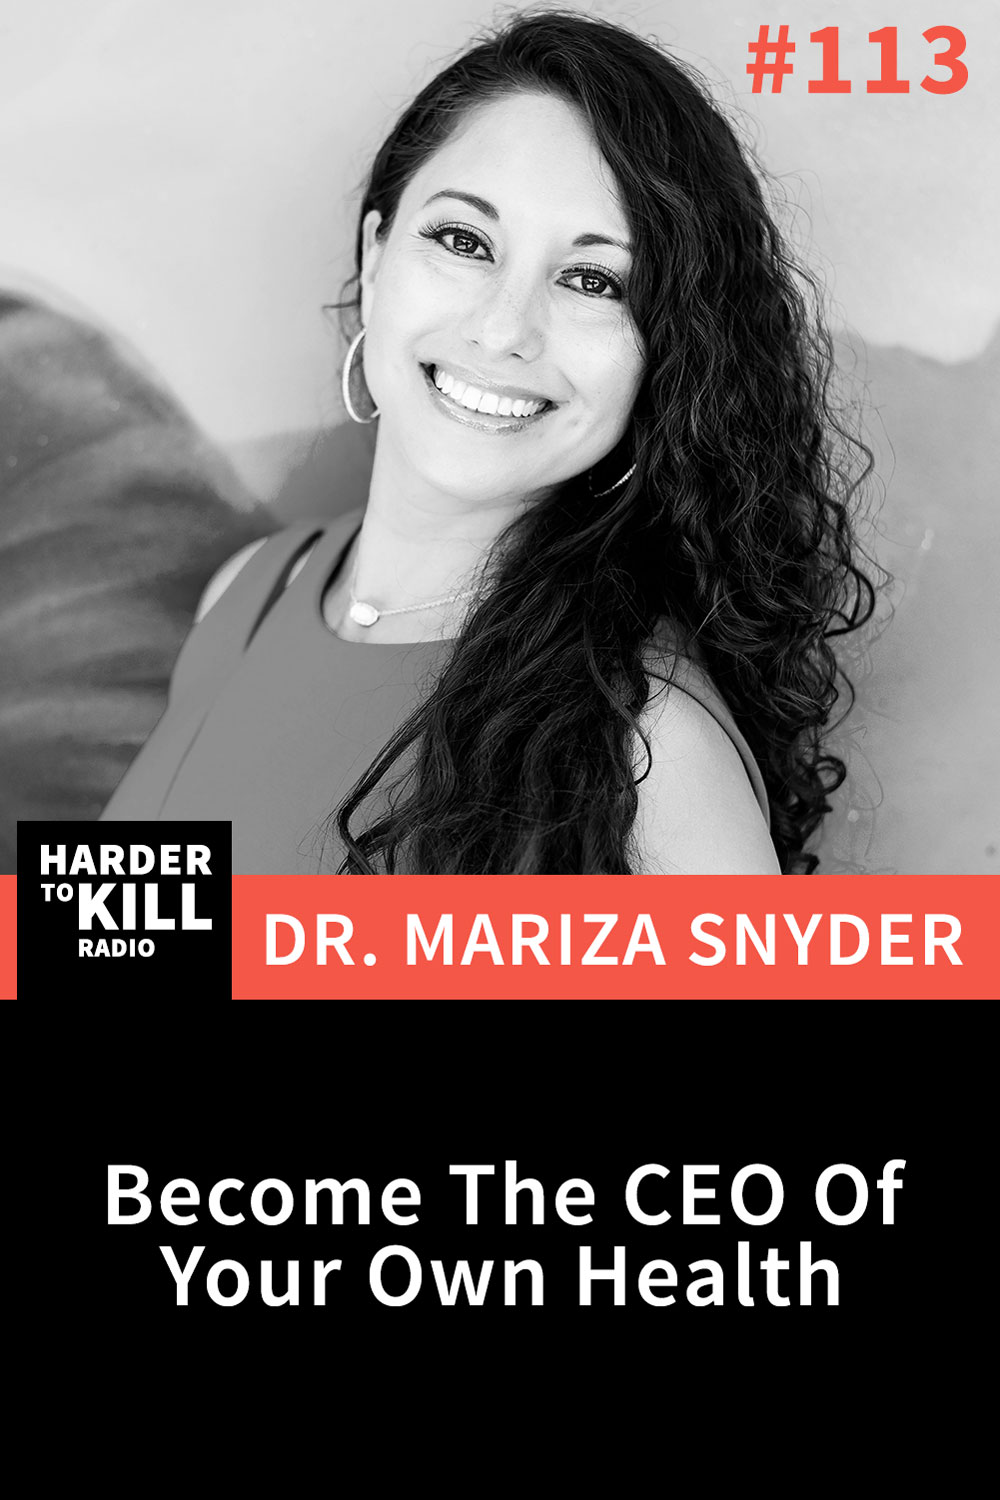 Harder To Kill Radio 113: Become The CEO Of Your Own Health w/ Dr. Mariza Snyder